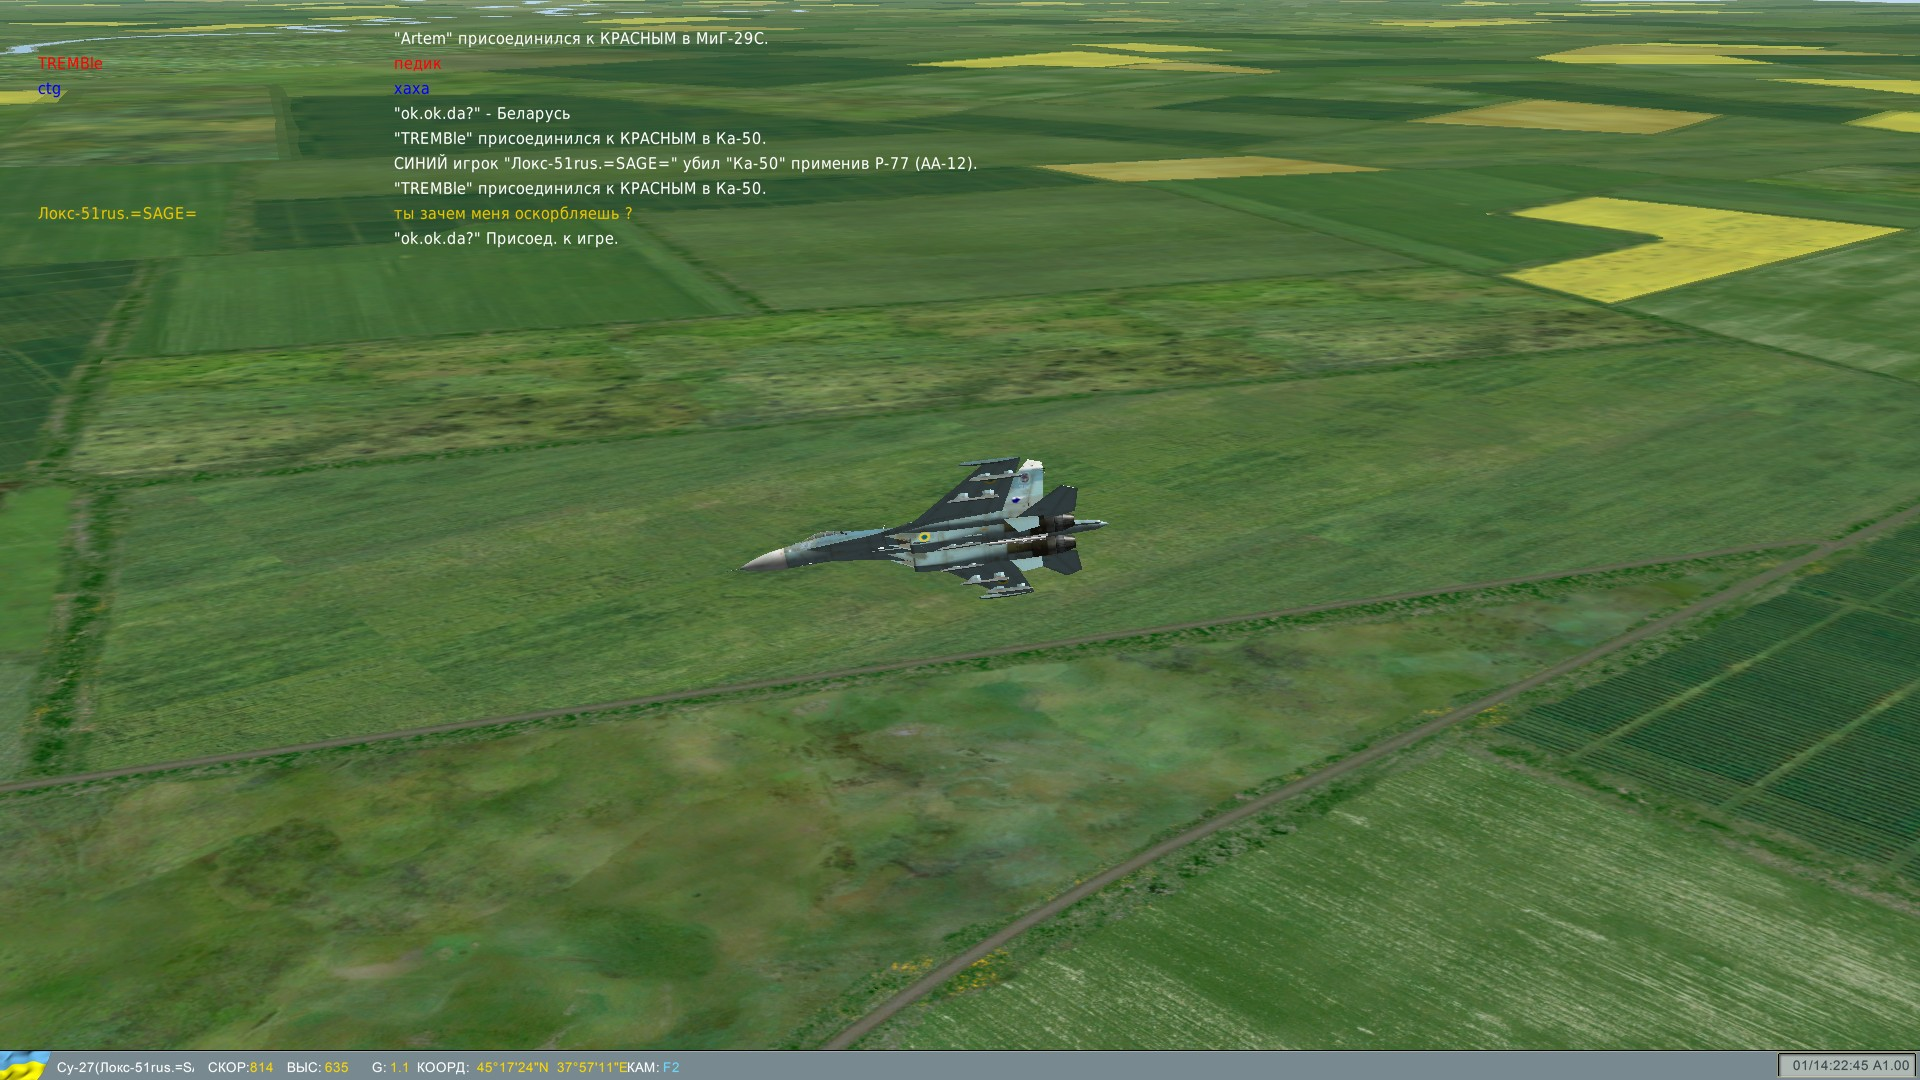 http://aerotero.ru/forum/uploads/images/2019/01/13/screenshot_062.jpg